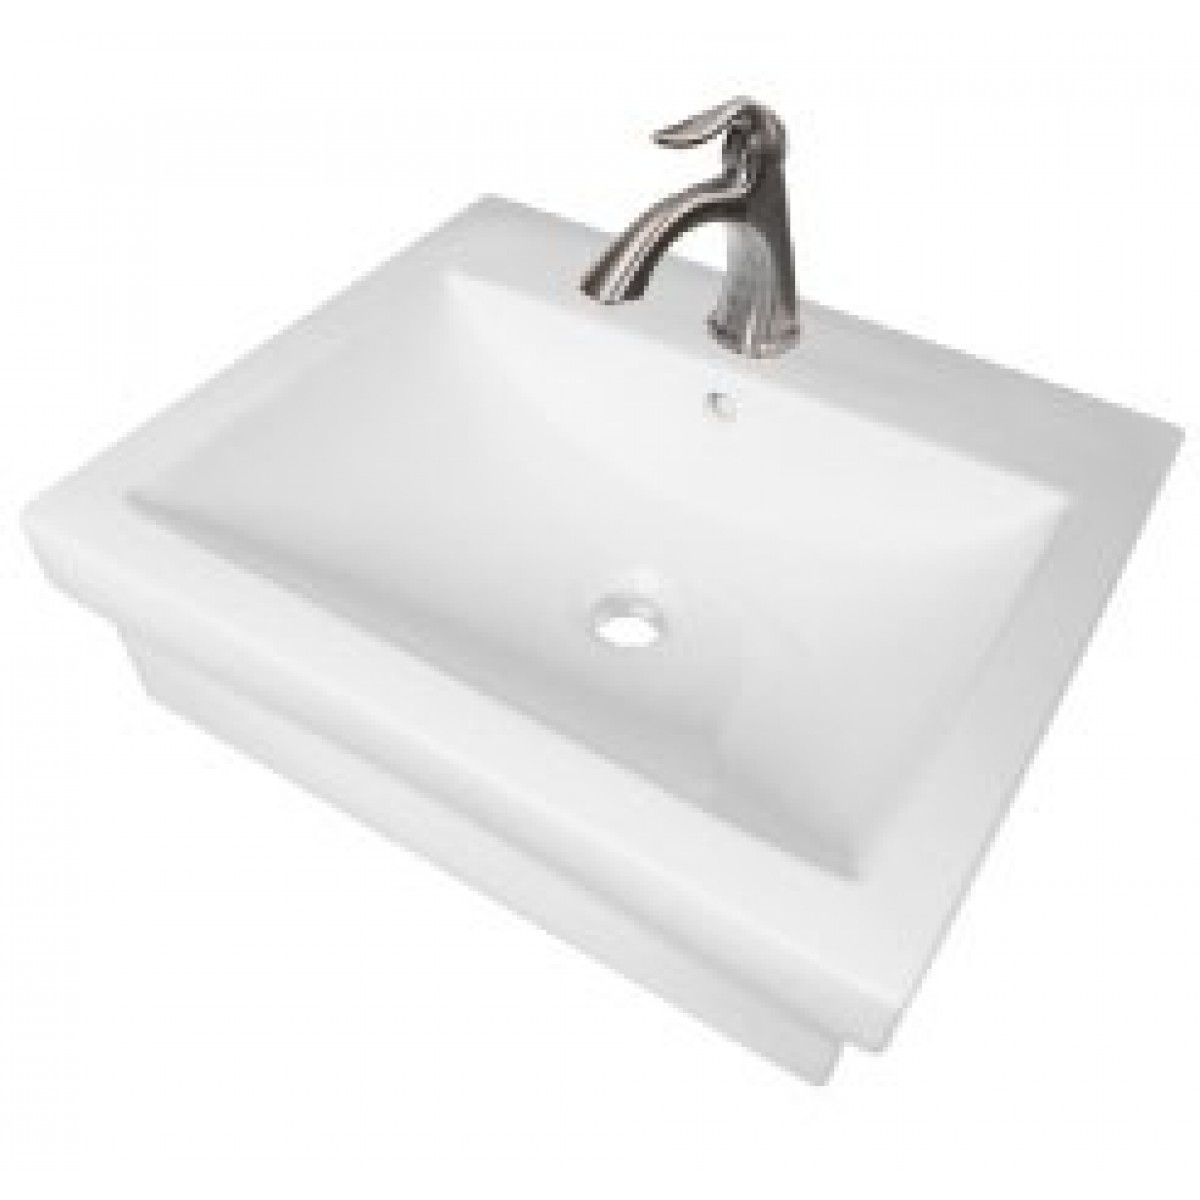 21 1 2 Inch Rectangular Porcelain Ceramic Single Hole Countertop Bathroom  Vessel Sink. Rectangular Porcelain Ceramic Single Hole Countertop Bathroom